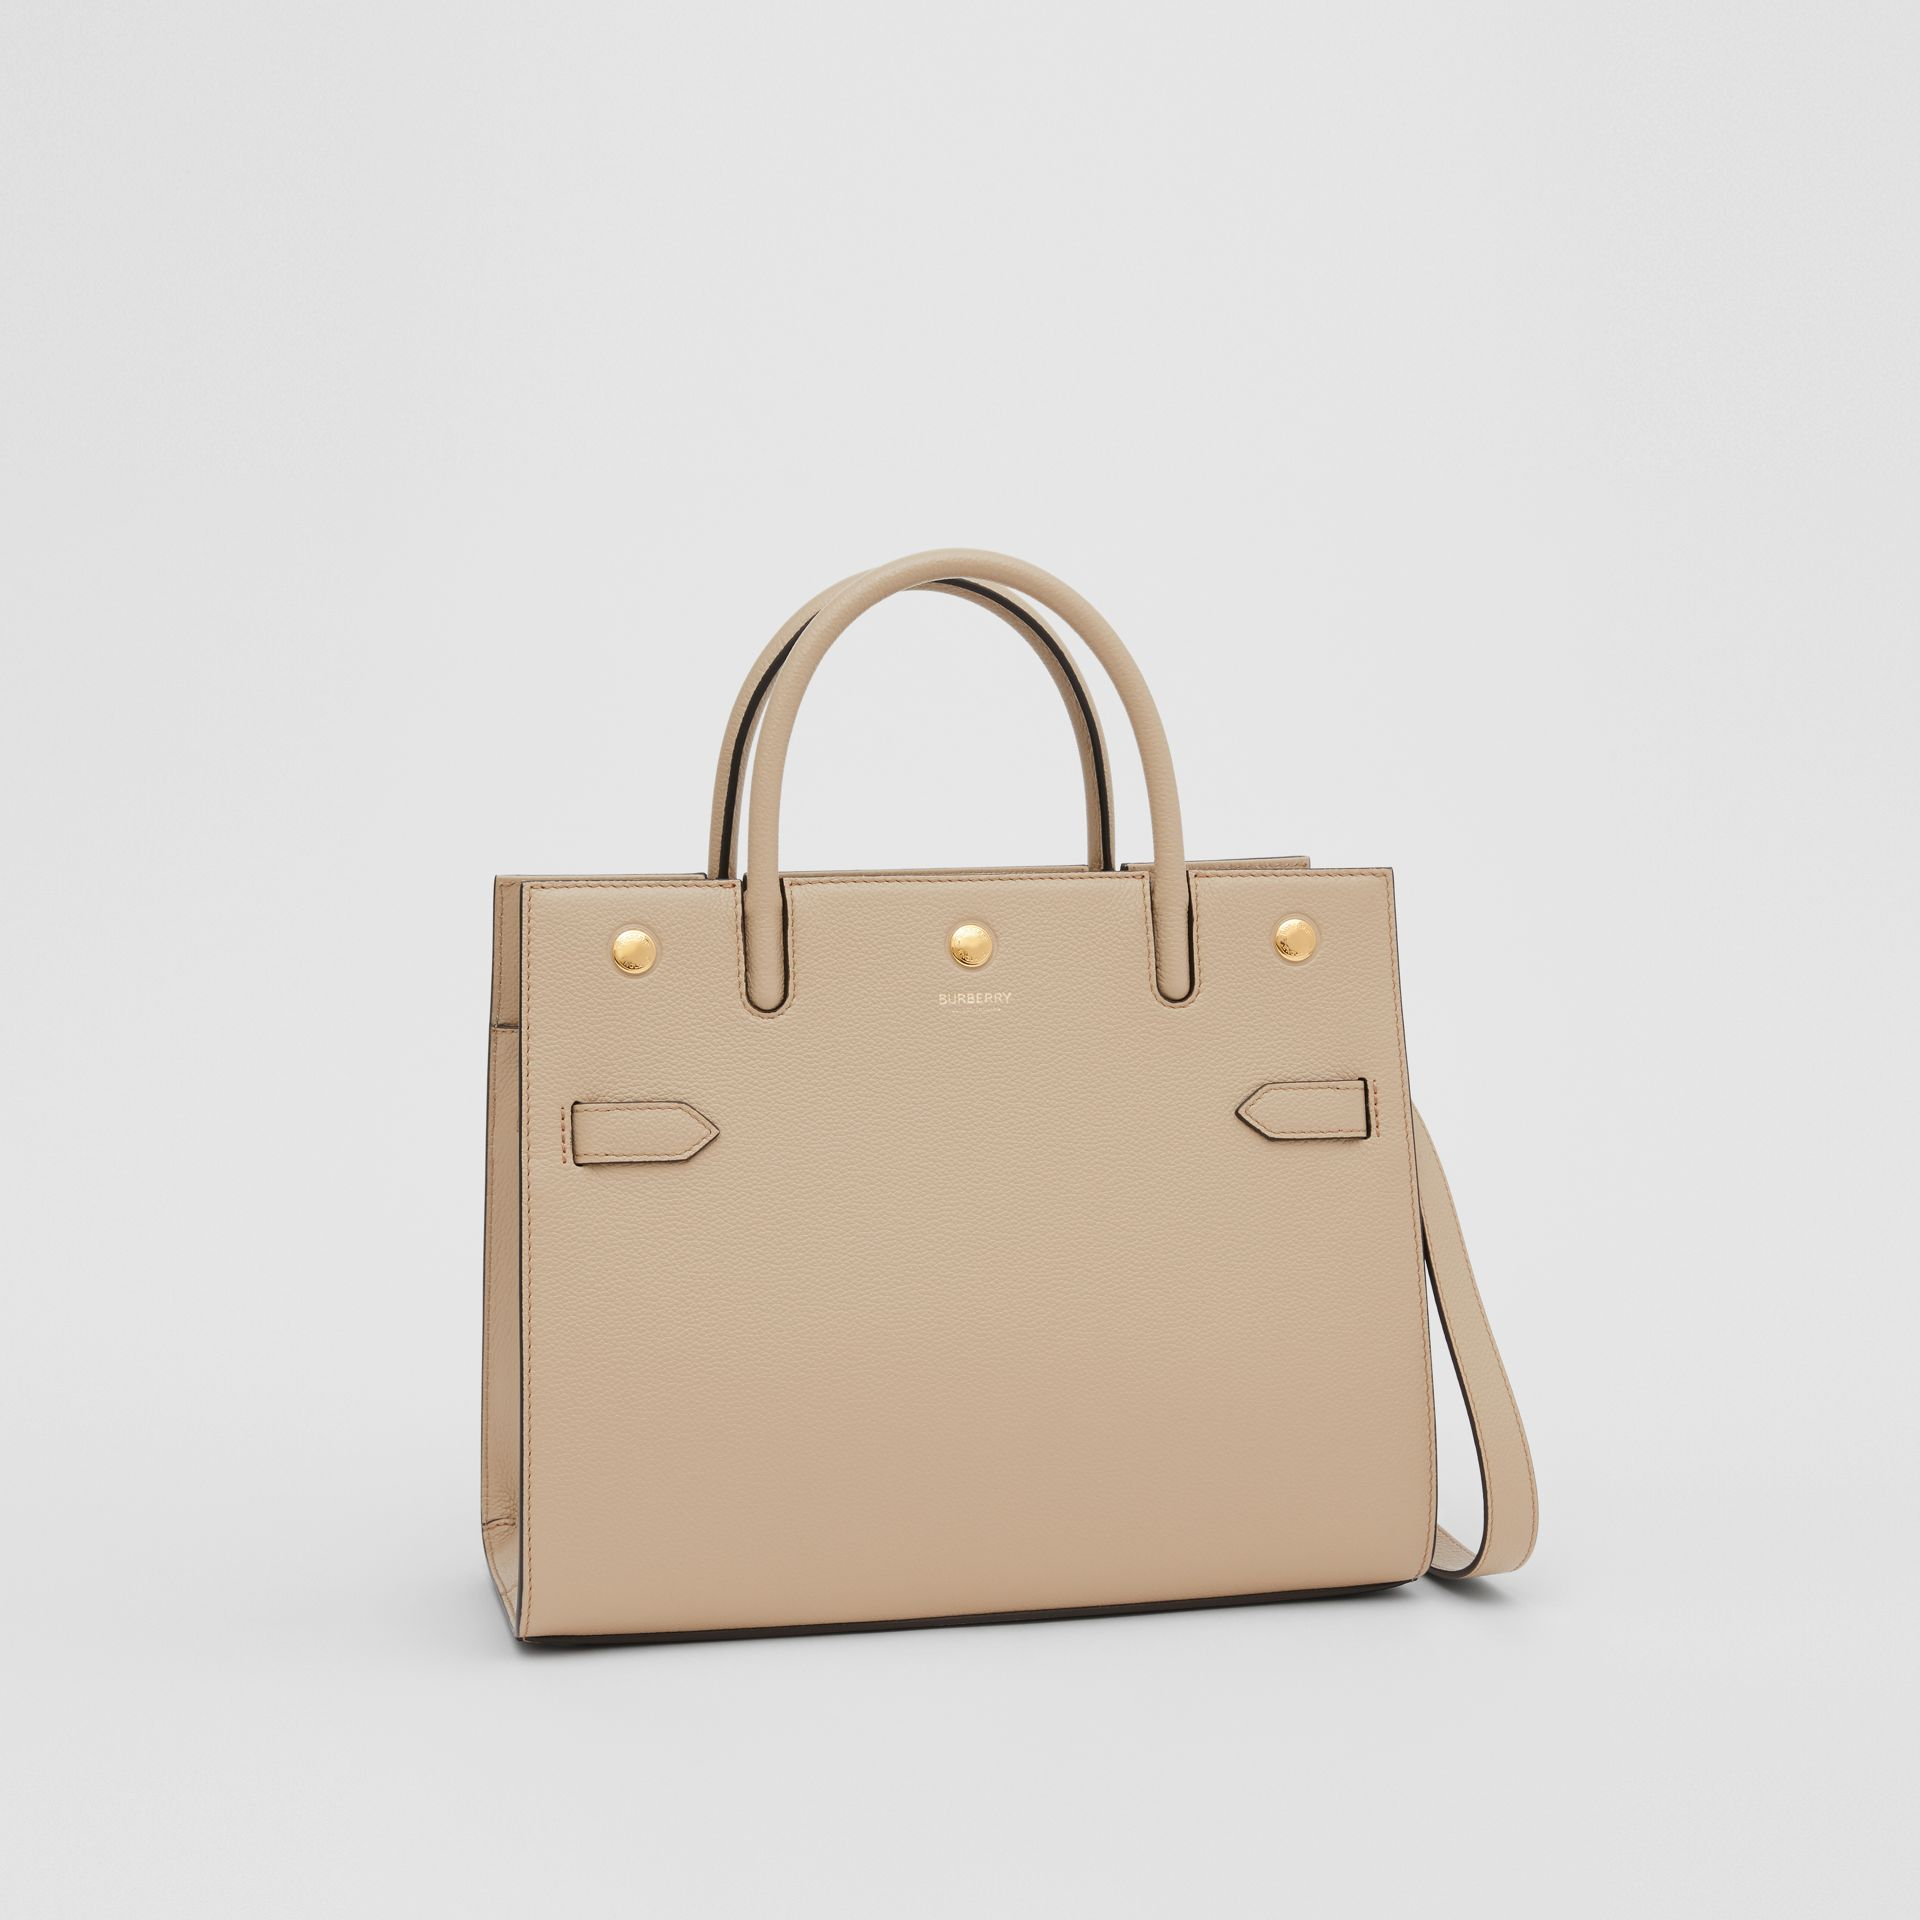 Small Leather Two-handle Title Bag in Light Beige - Women | Burberry Hong Kong S.A.R - gallery image 6